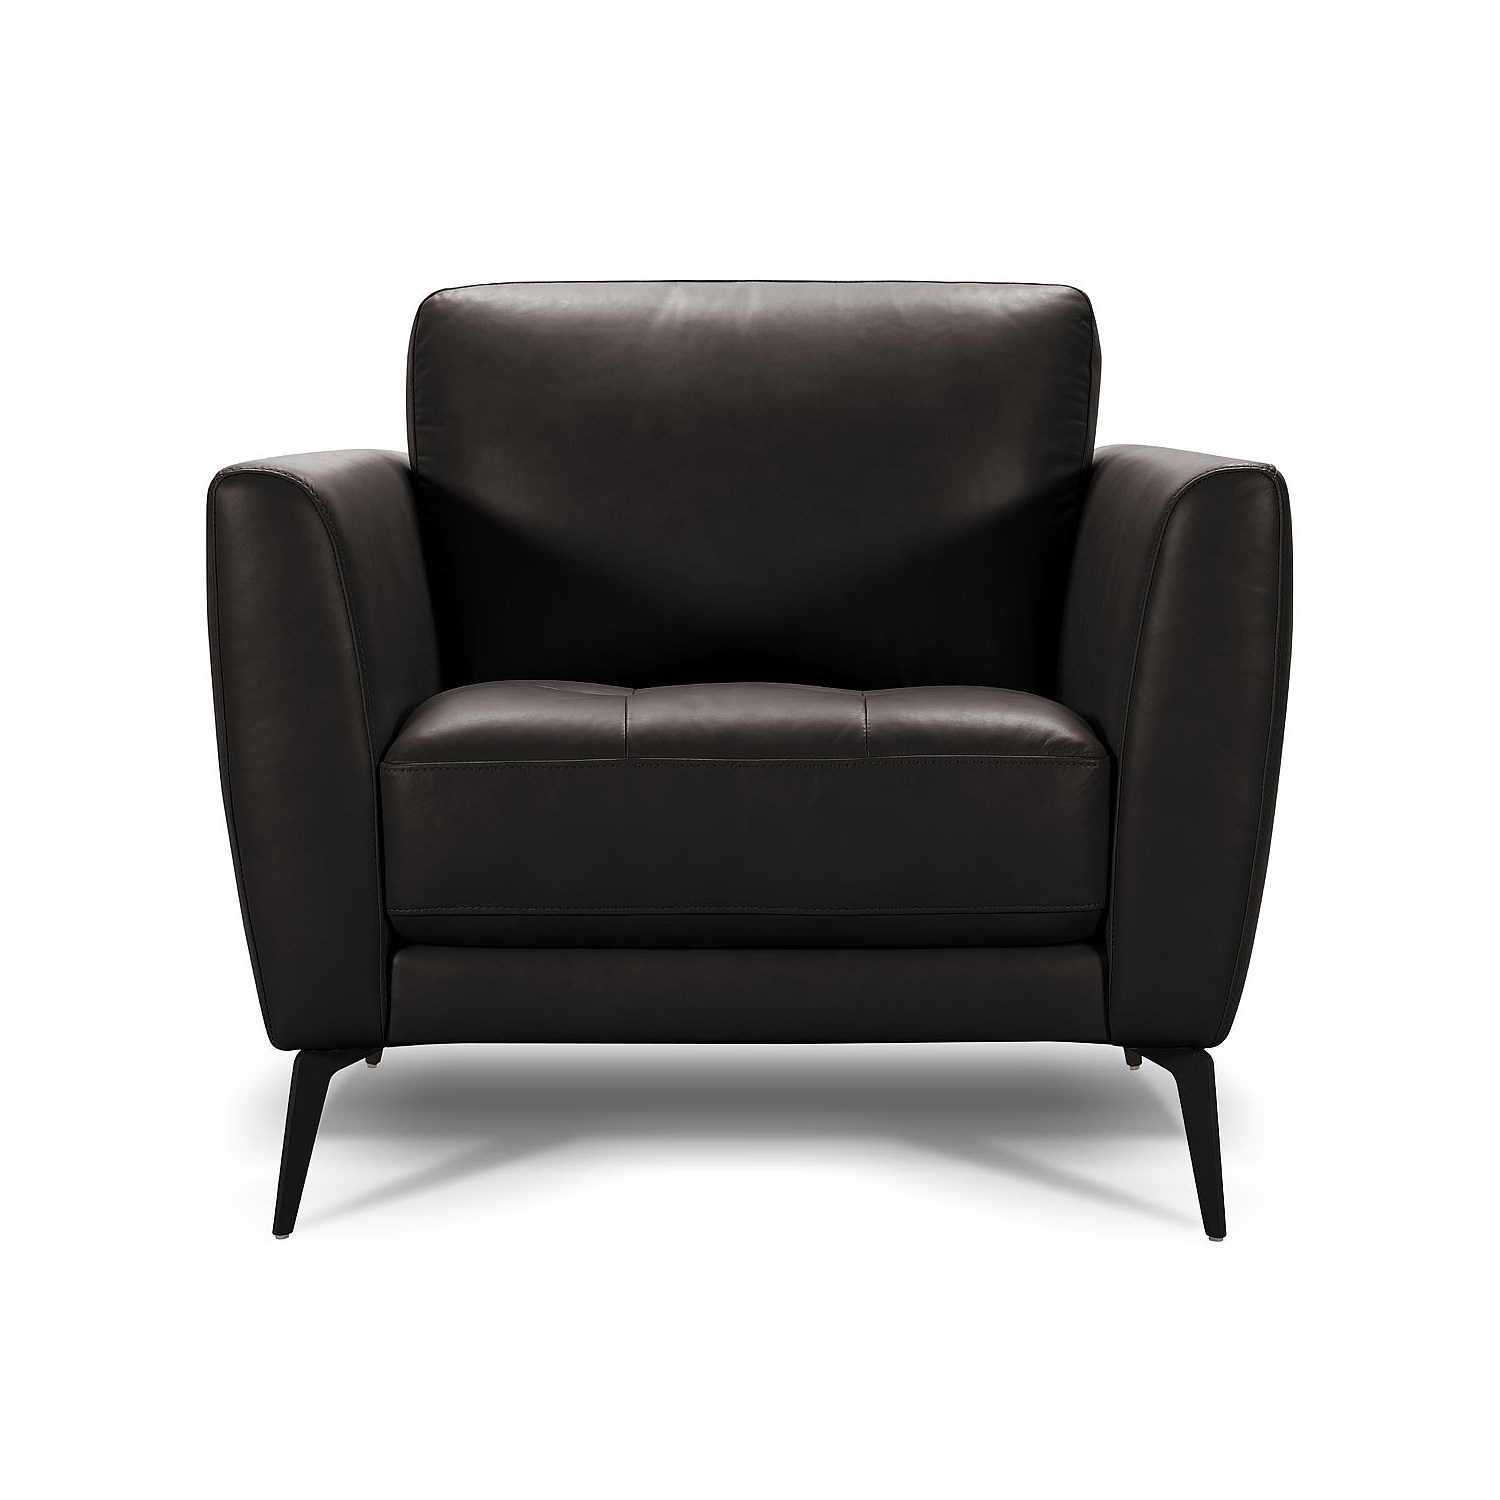 Armchairs And Occasional Chairs – Attica Armchair Union For Well Known Attica Arm Chairs (#2 of 20)